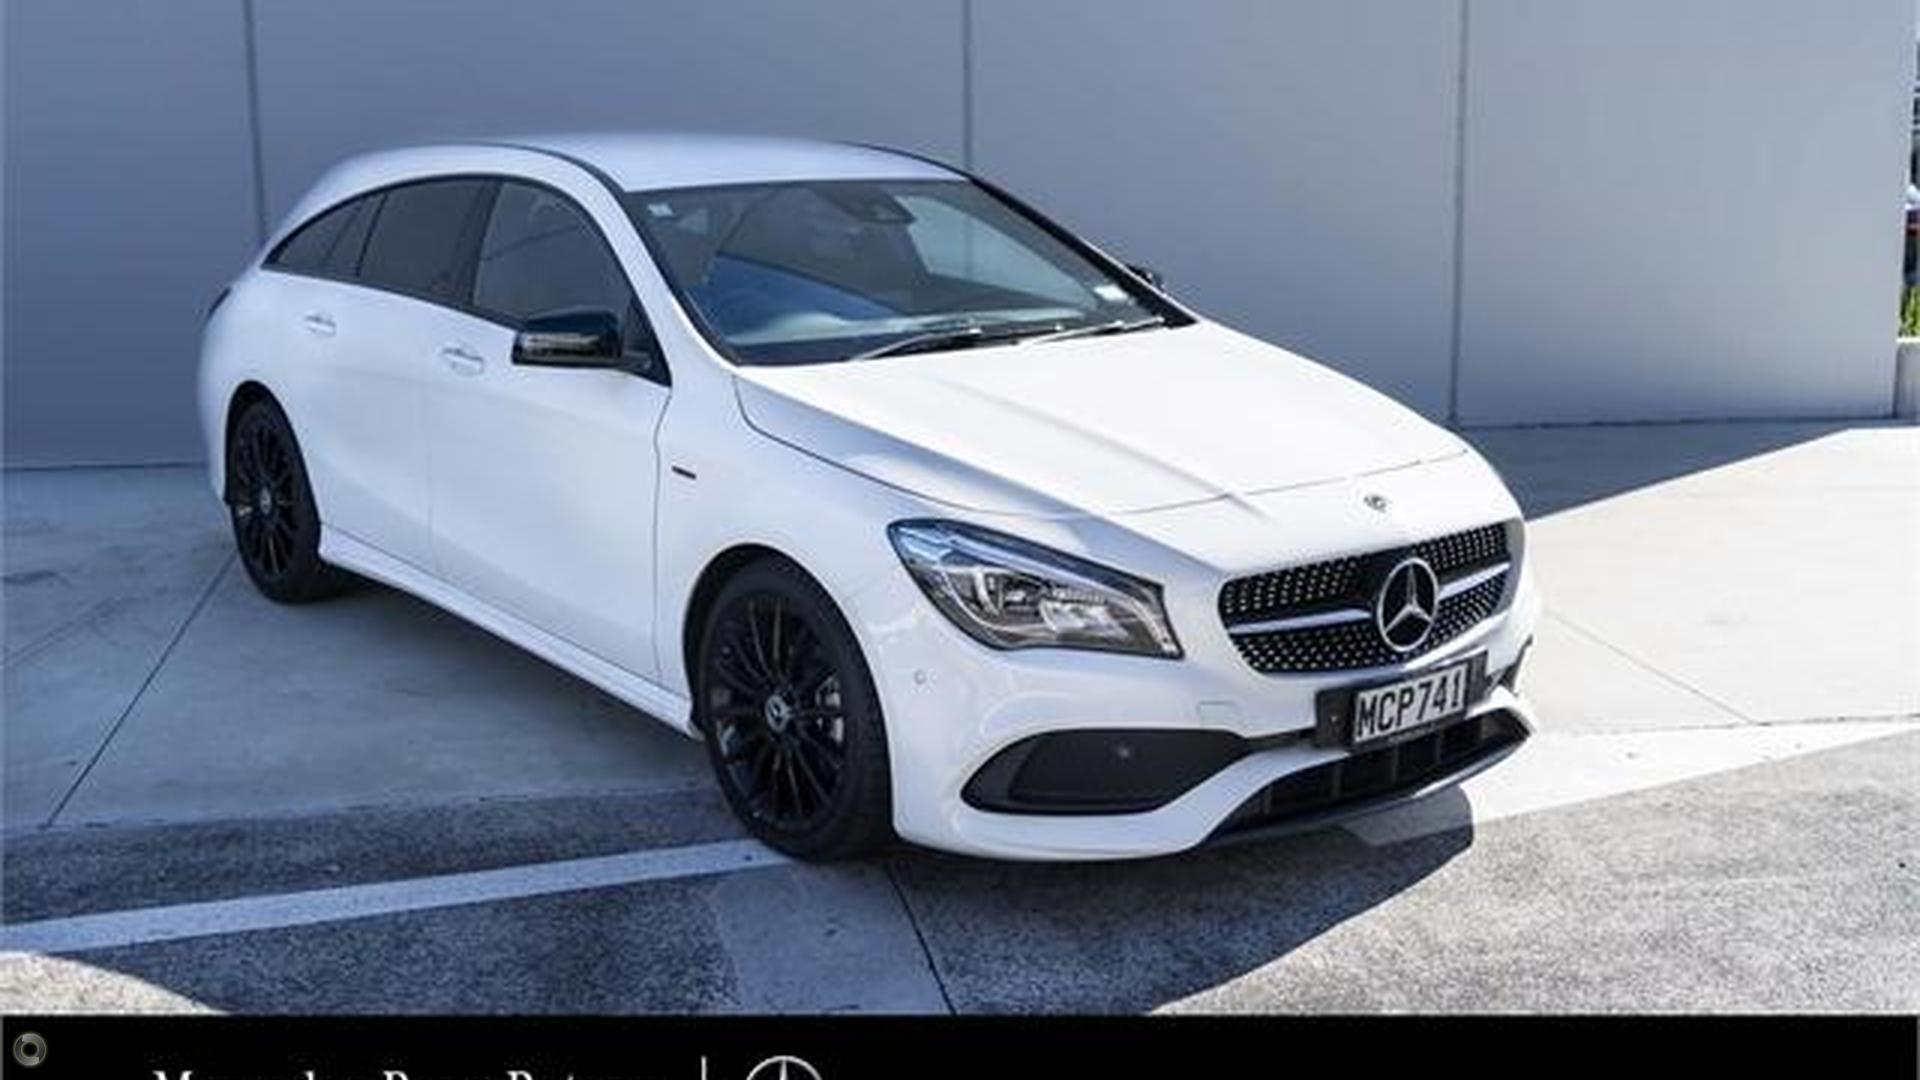 2019 Mercedes-Benz CLA 200 Shooting Brake